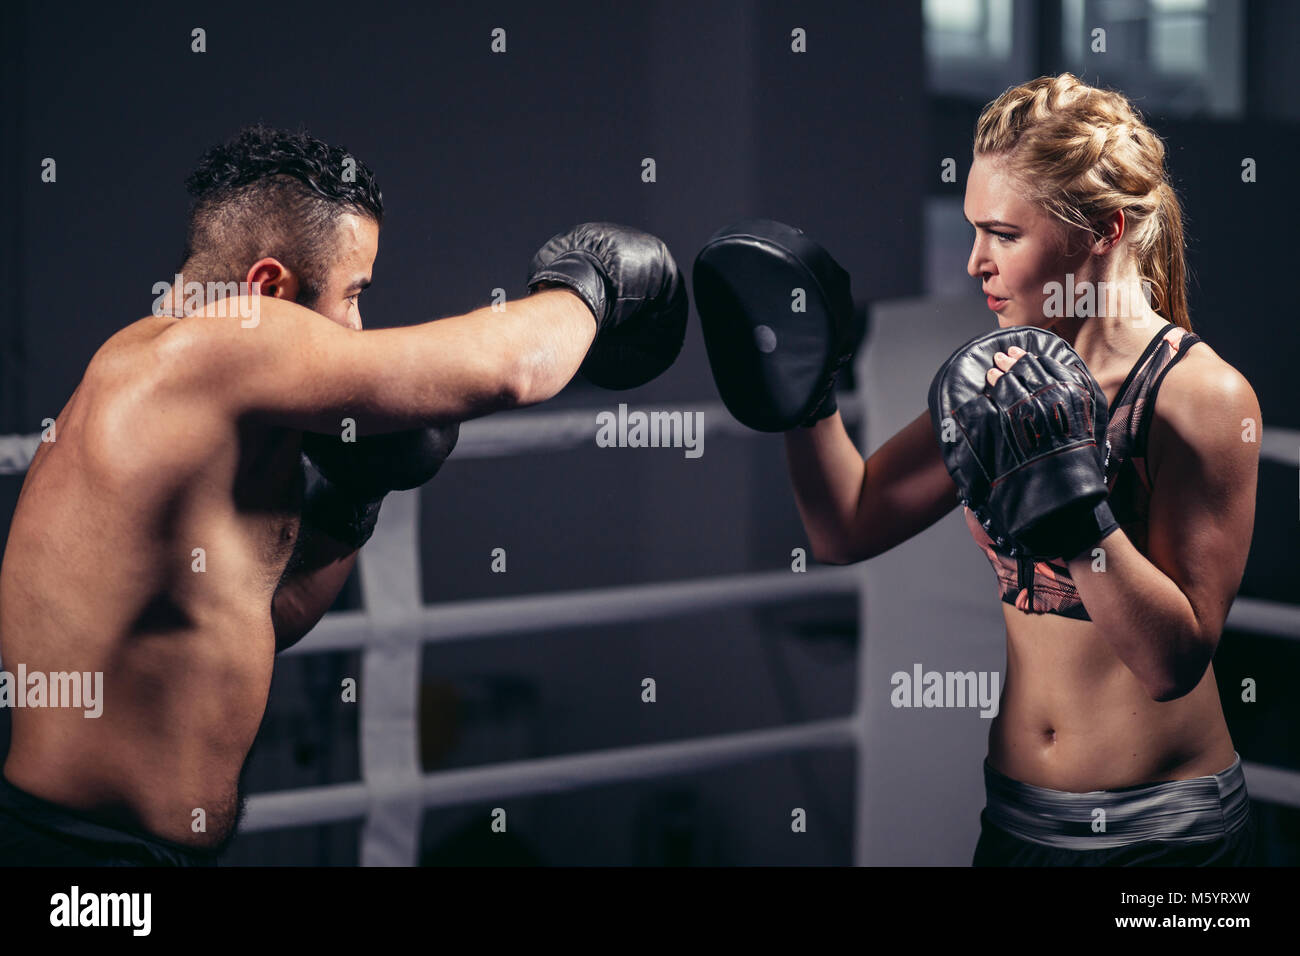 Sporty muscular young man and woman boxing together isolated on black - Stock Image